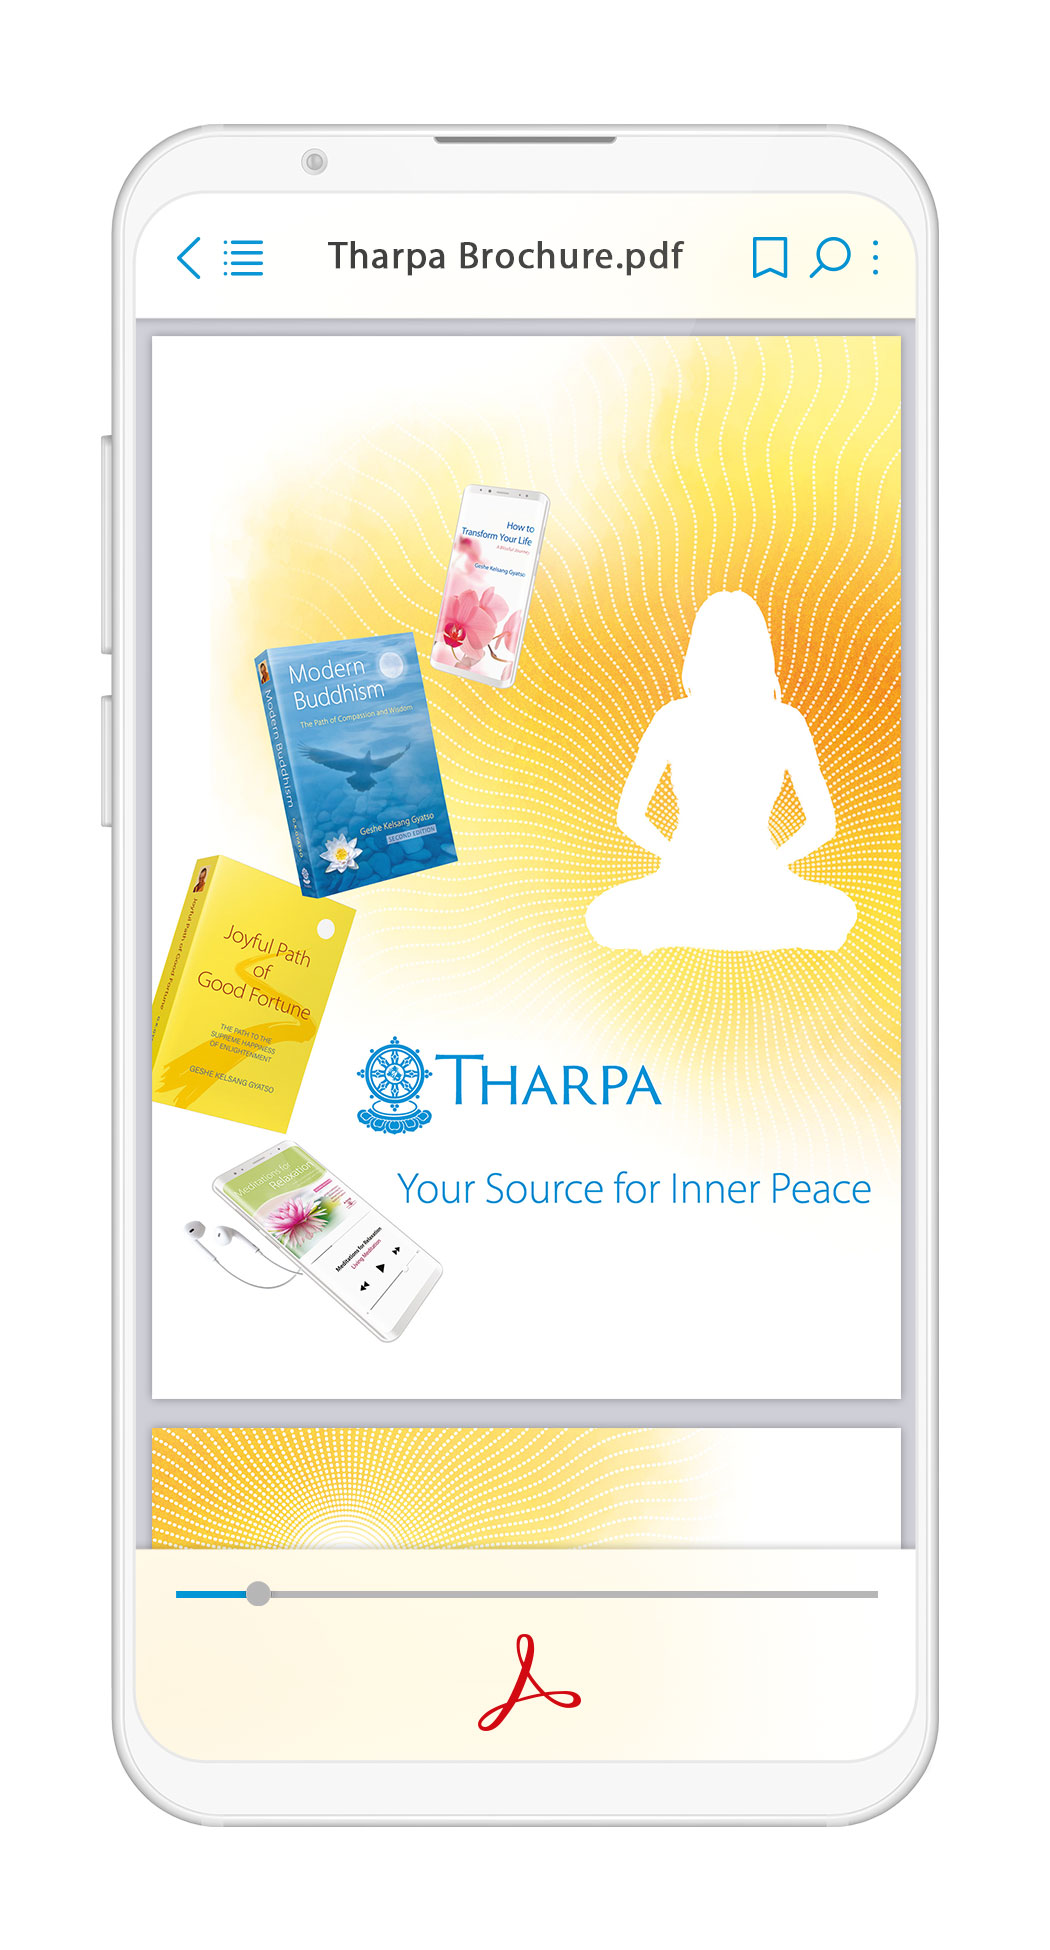 Tharpa-Brochure-2020-Mobile-PDF-Phone-Android-Cover-WEB-2020-09